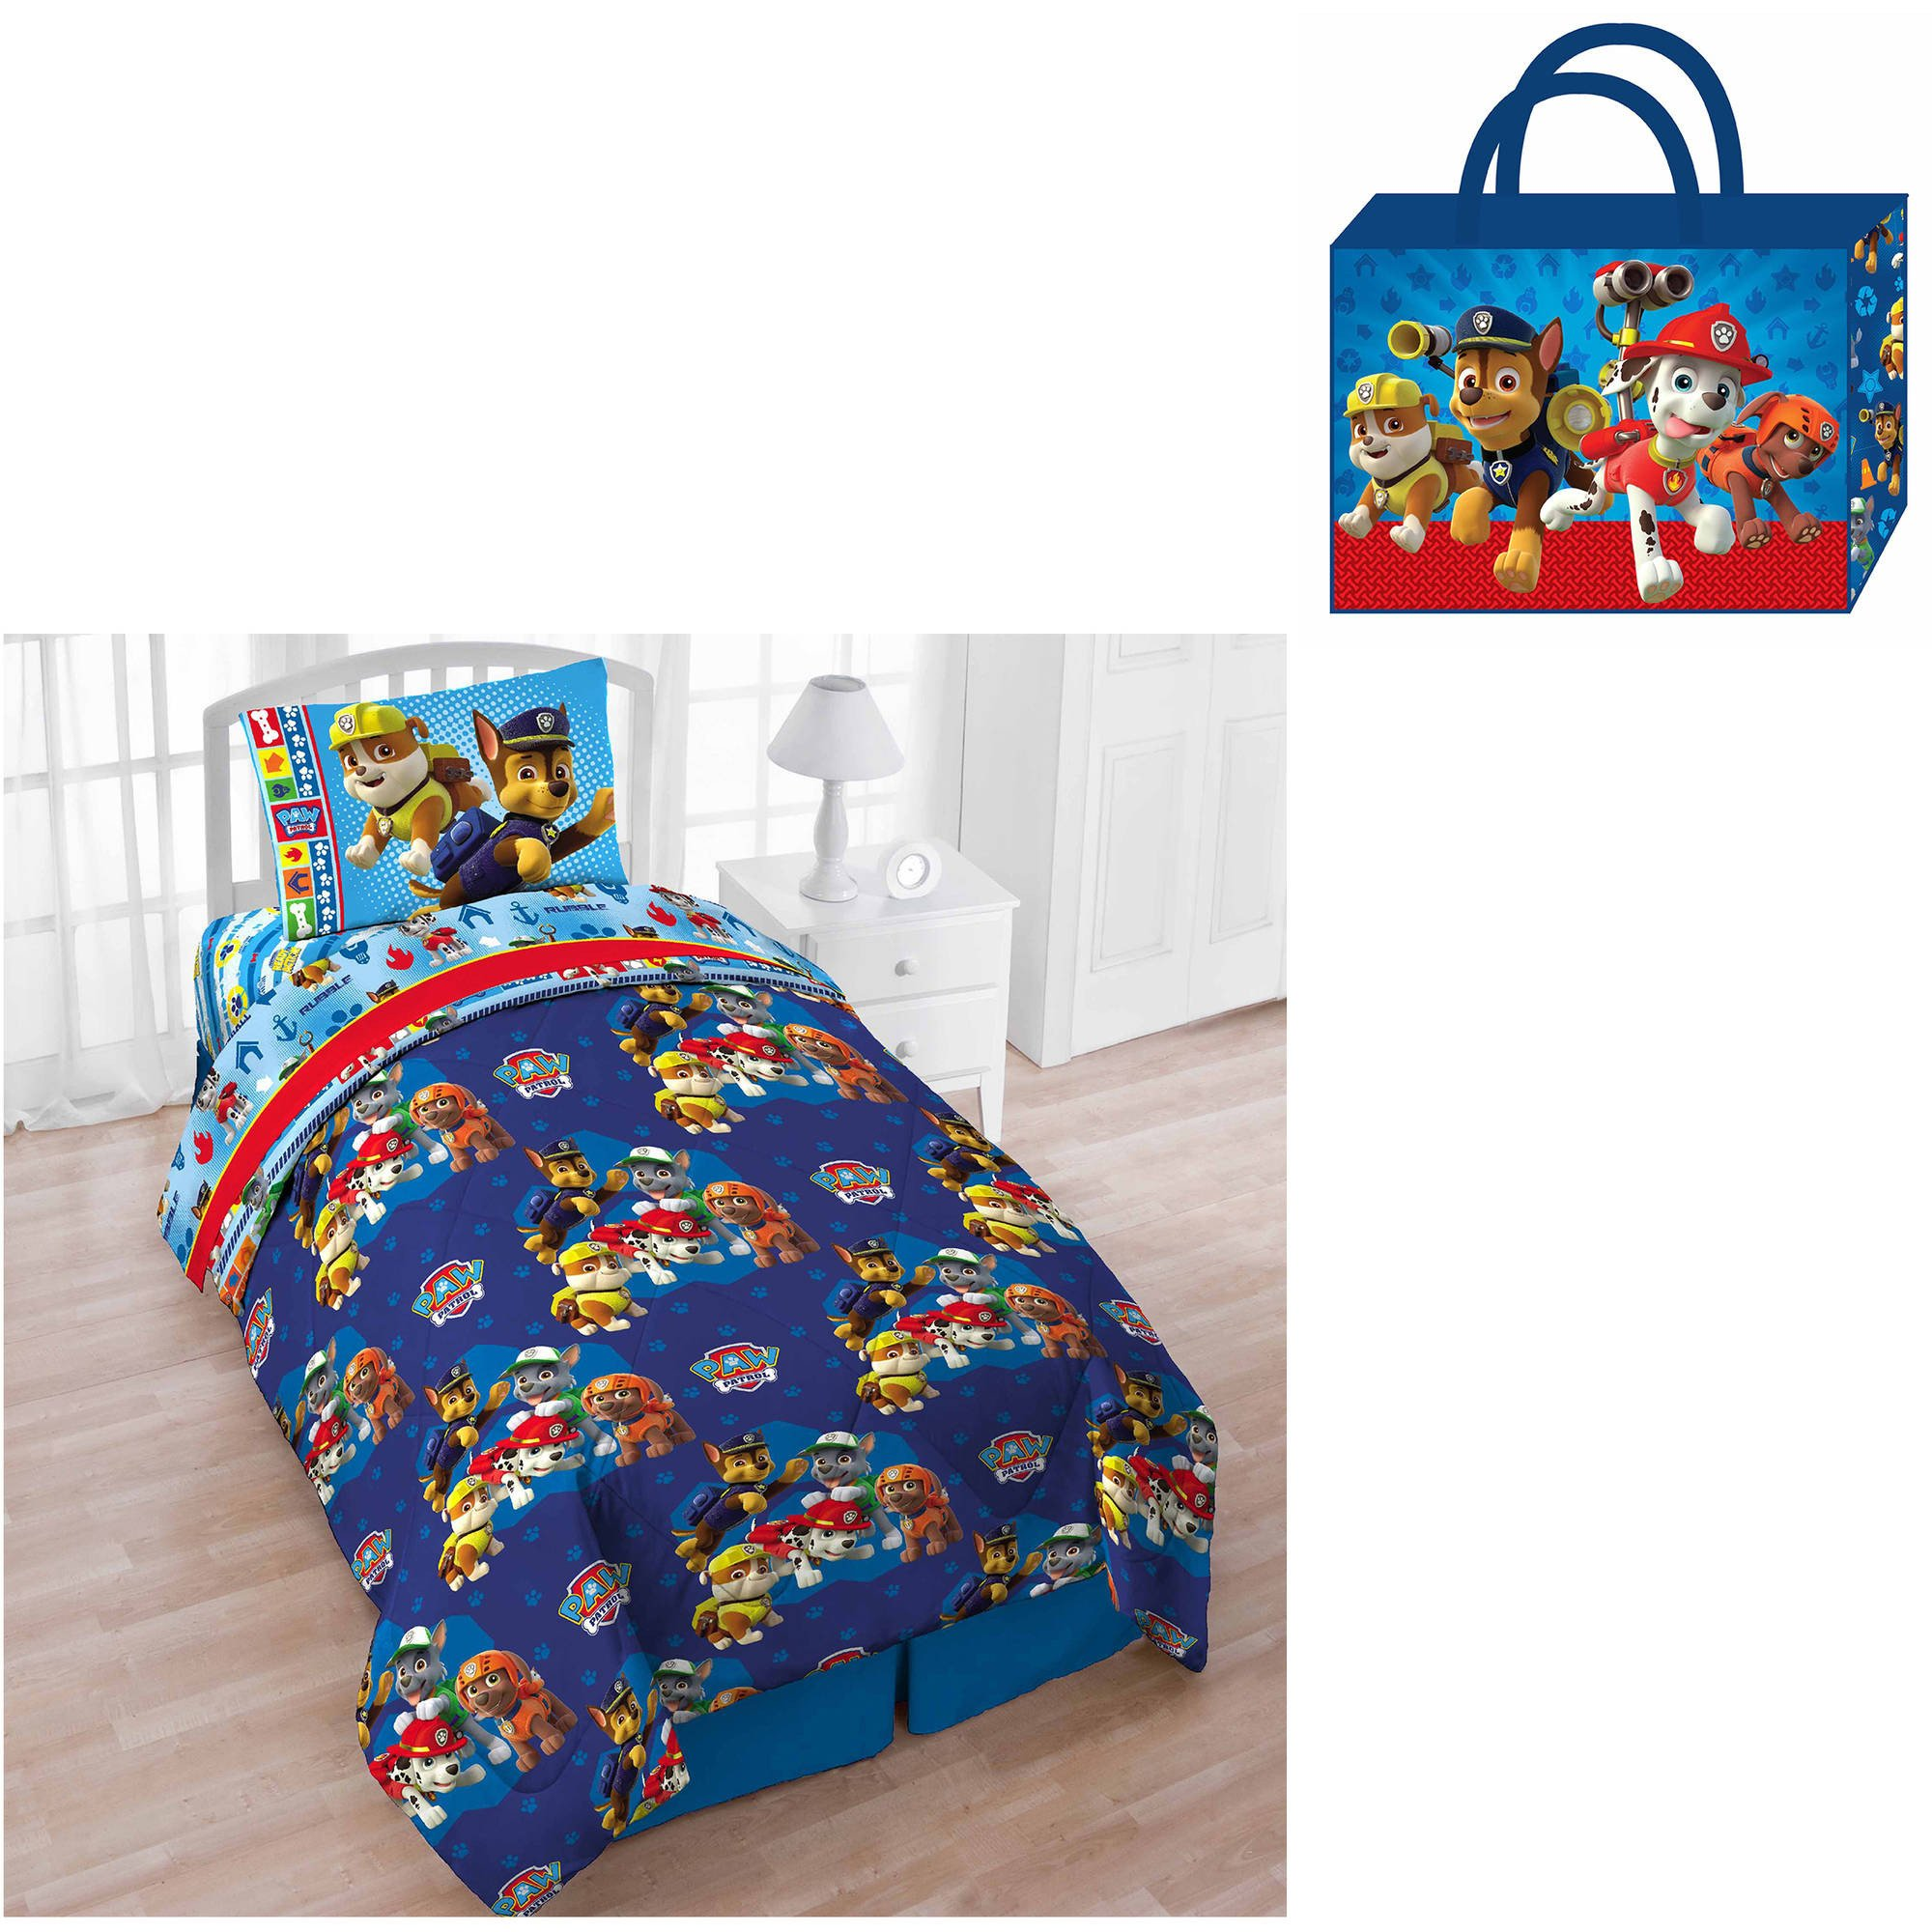 Paw Patrol Bedroom Set New Paw Patrol Double Full 4 Piece Sheet Set Be Your Own Rainbow